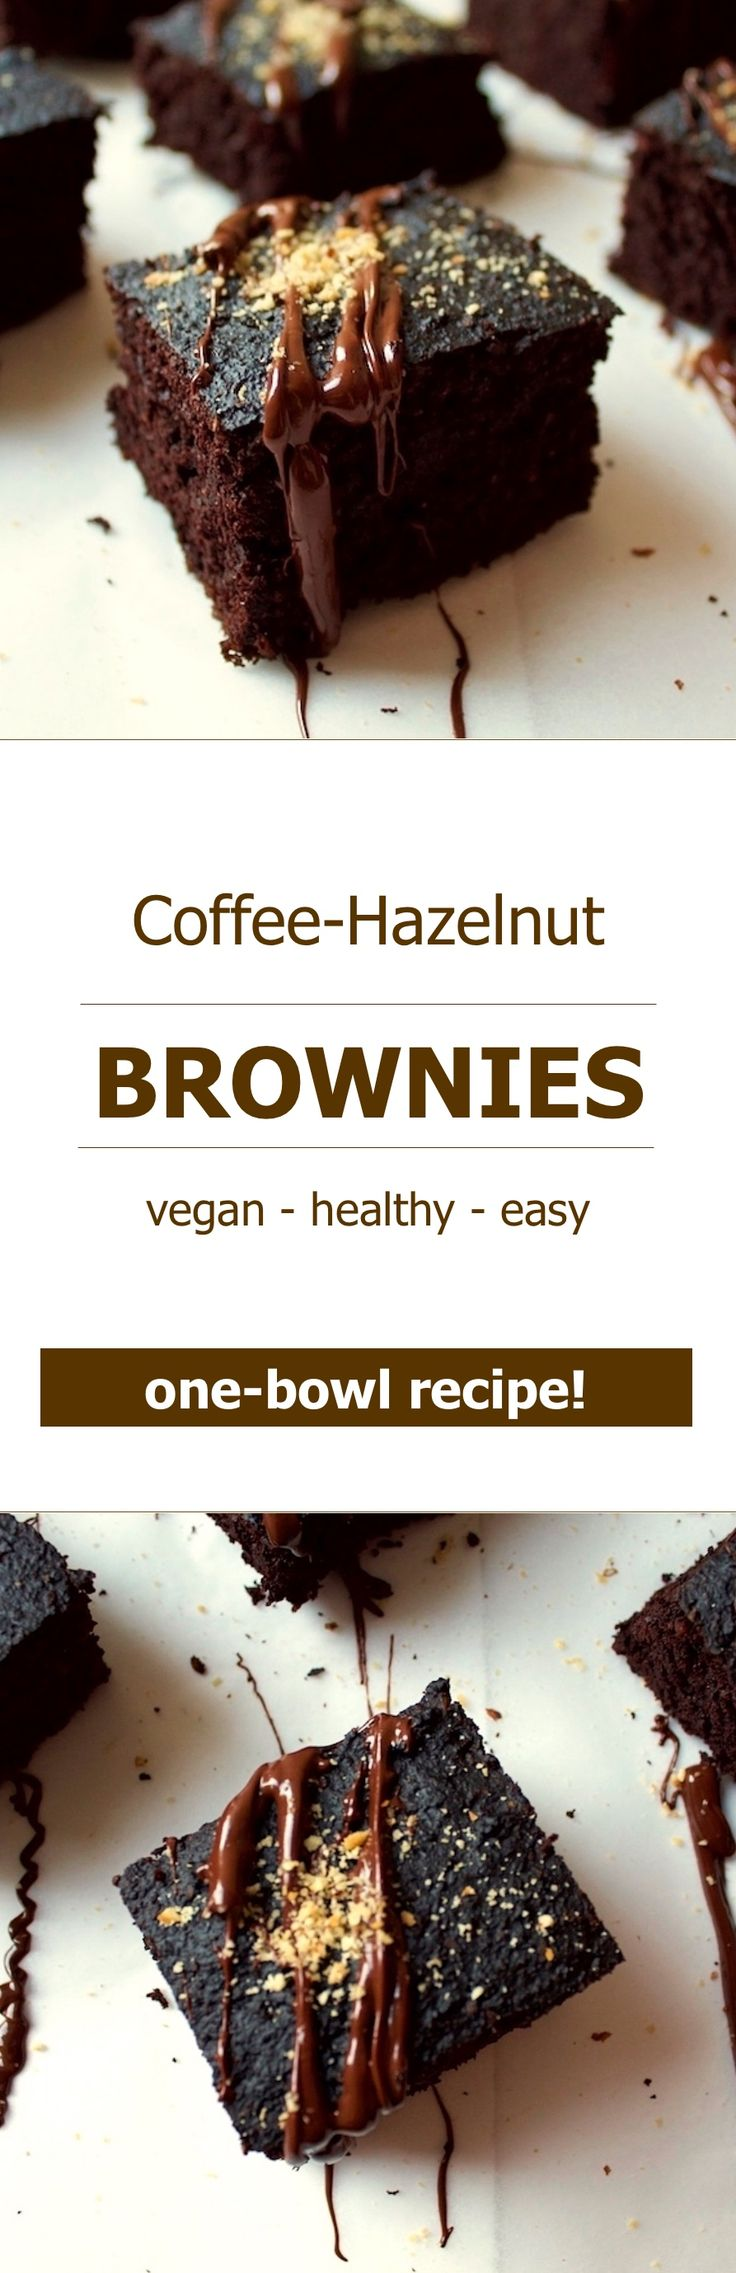 These soft and vegan coffee-hazelnut brownies are super delicious and easy to make. This one-bowl brownie recipe is healthy too!